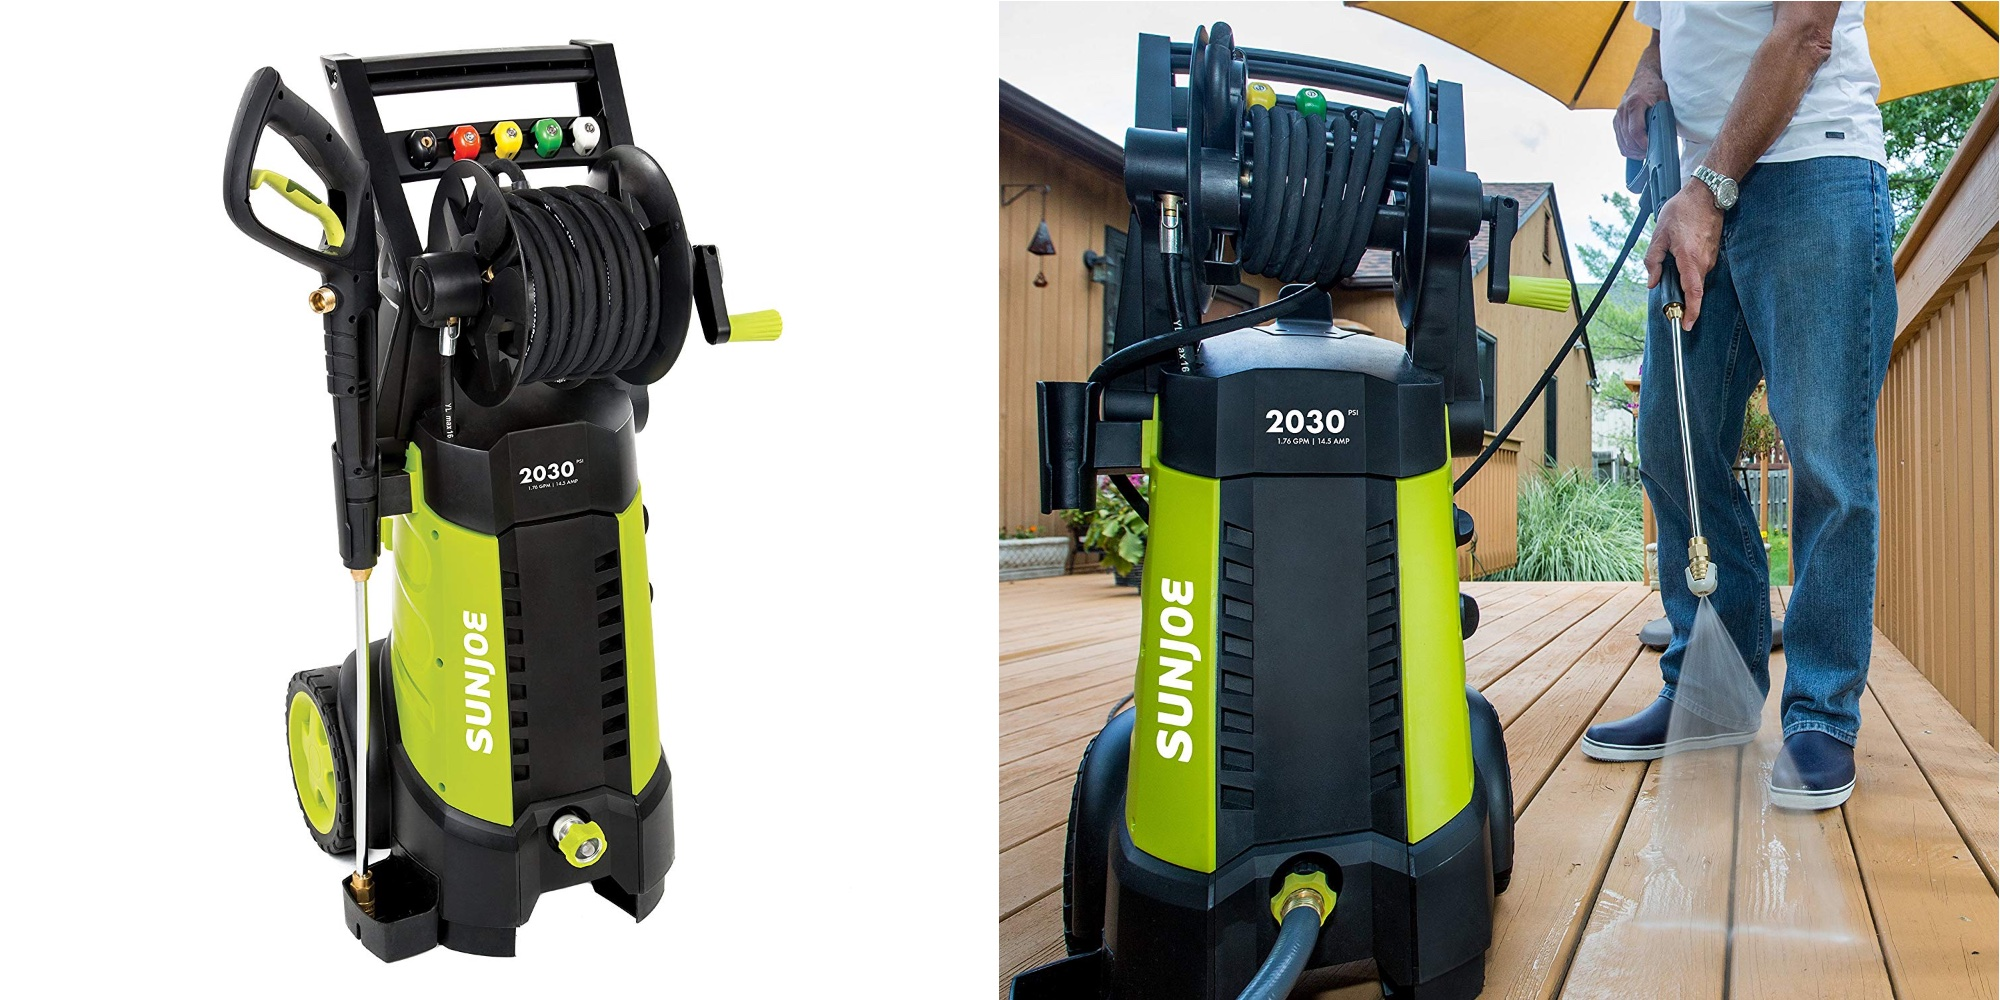 Sun Joe's 14.5A Electric Pressure Washer hits new Amazon low at $116 (Reg. $160)